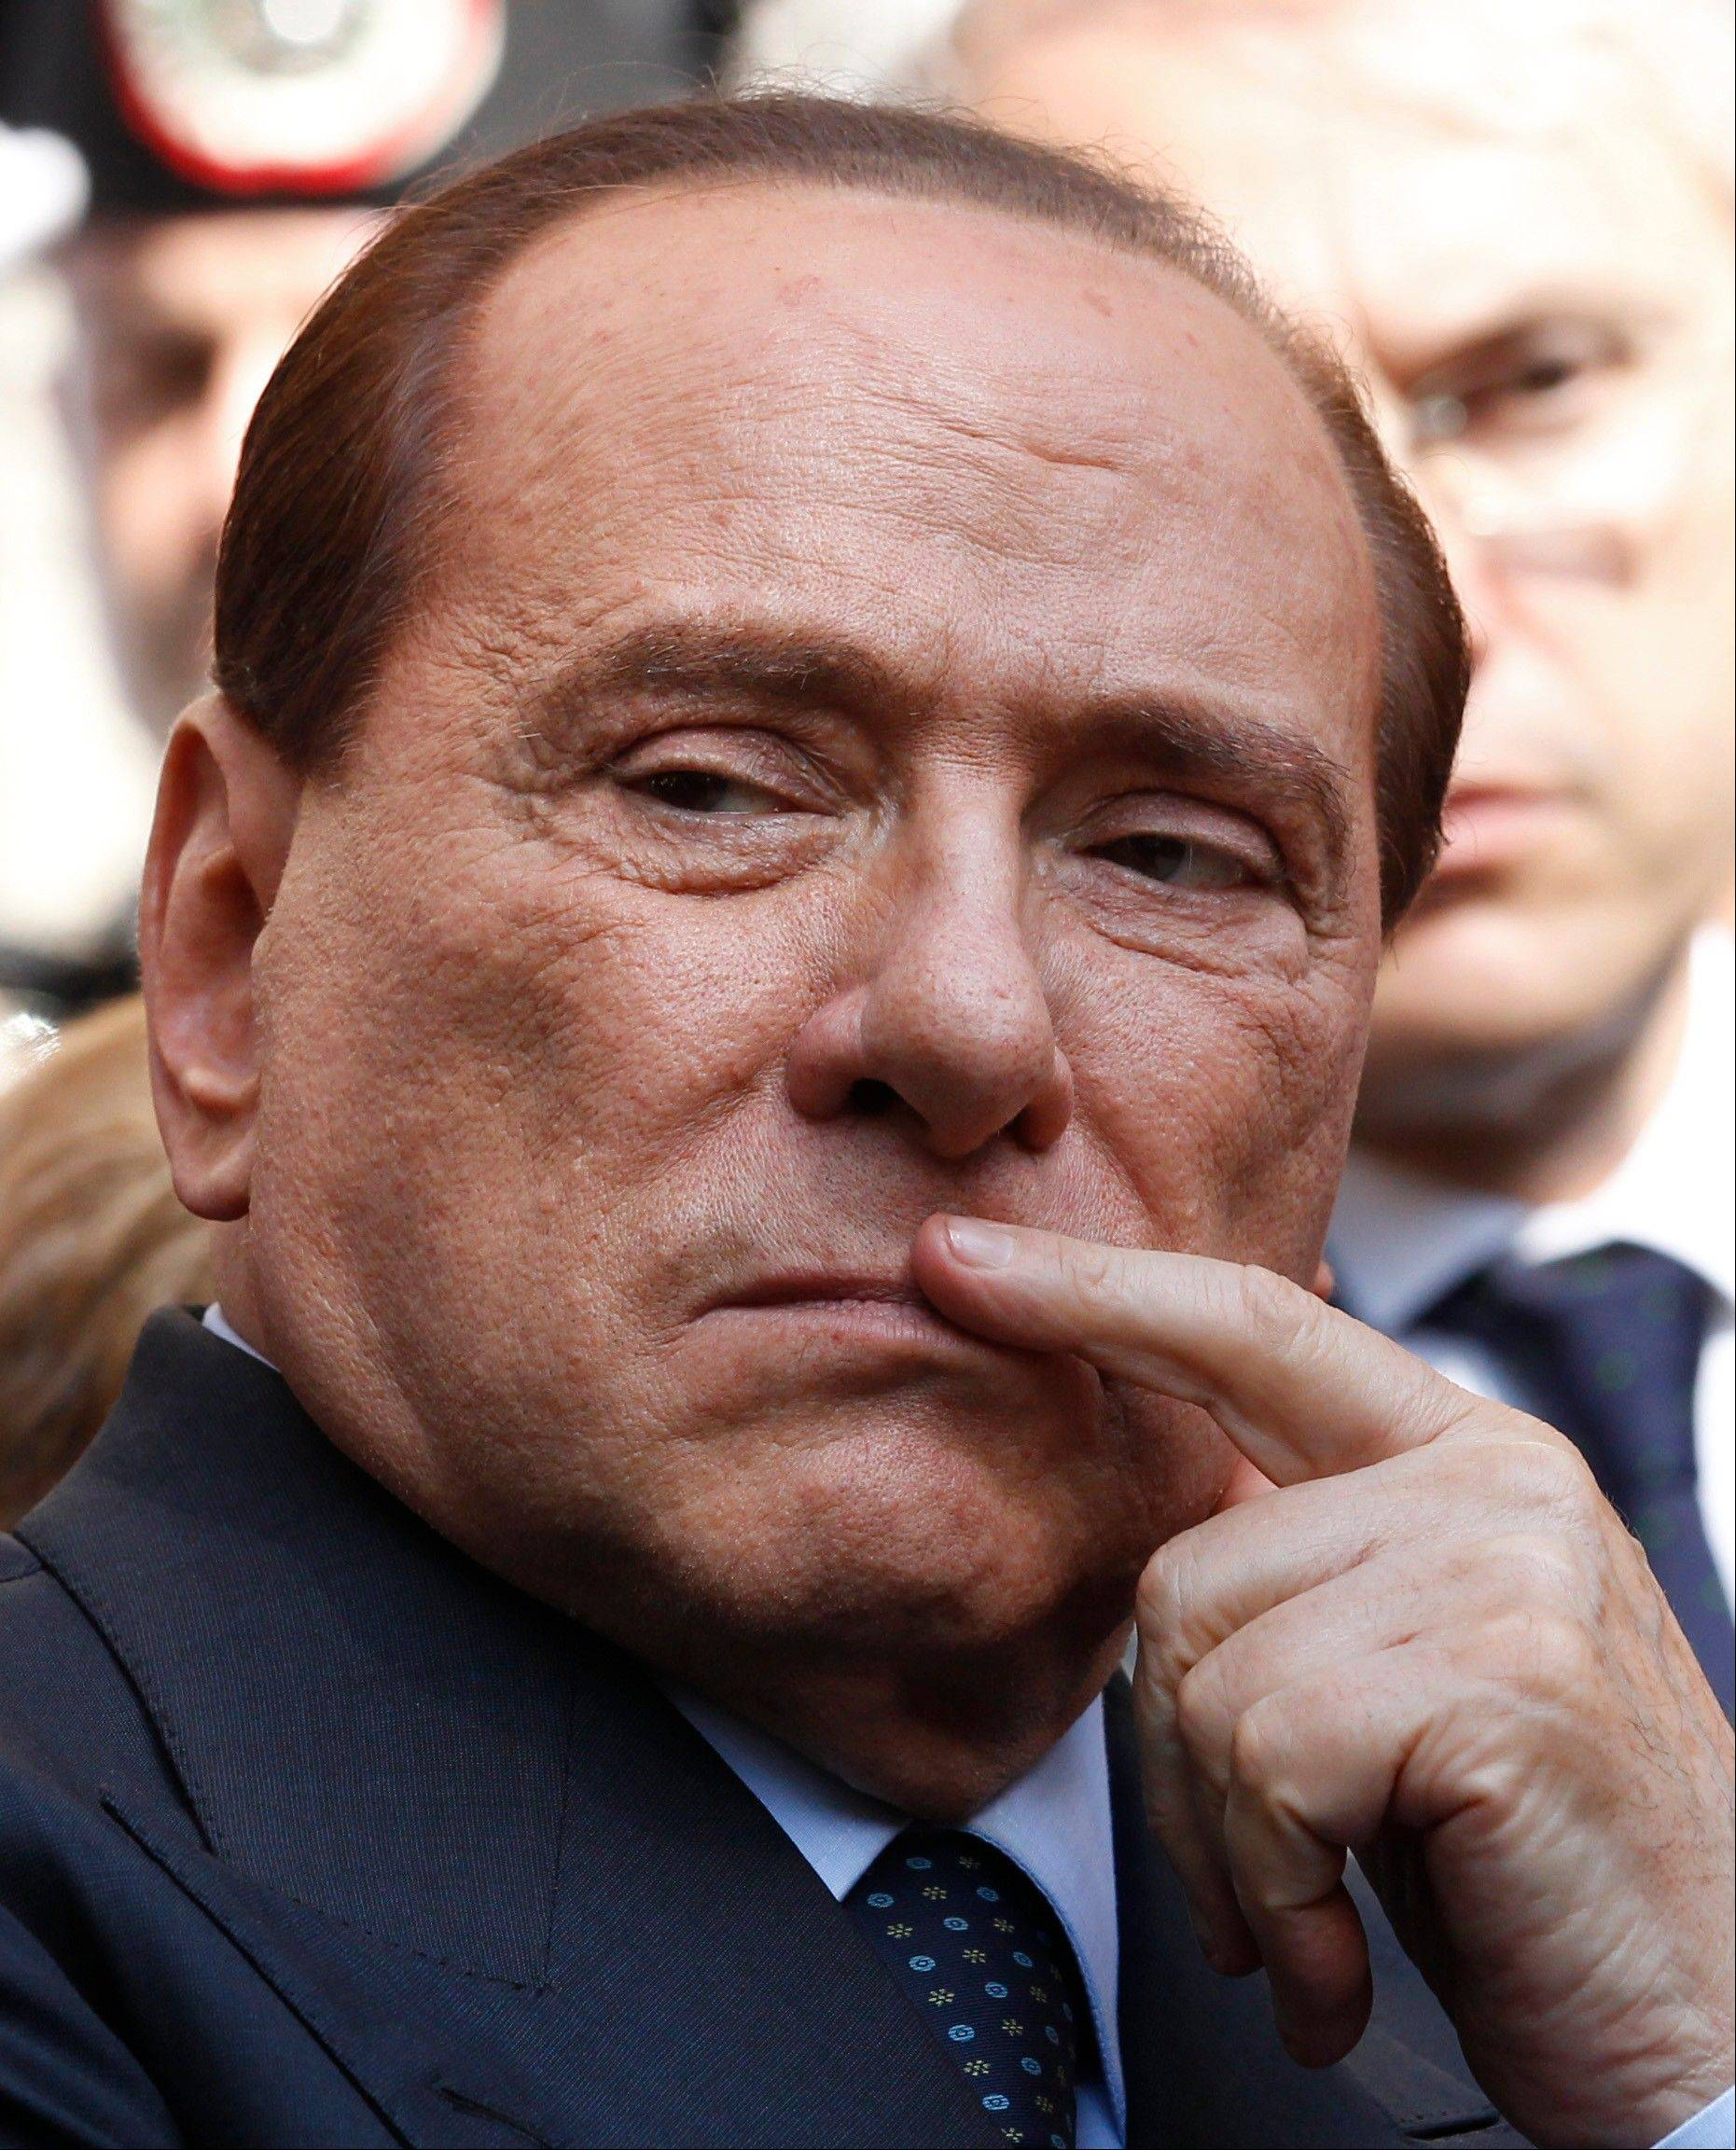 A court in Italy has convicted former Premier Silvio Berlusconi of tax fraud and sentenced him to four years in prison.